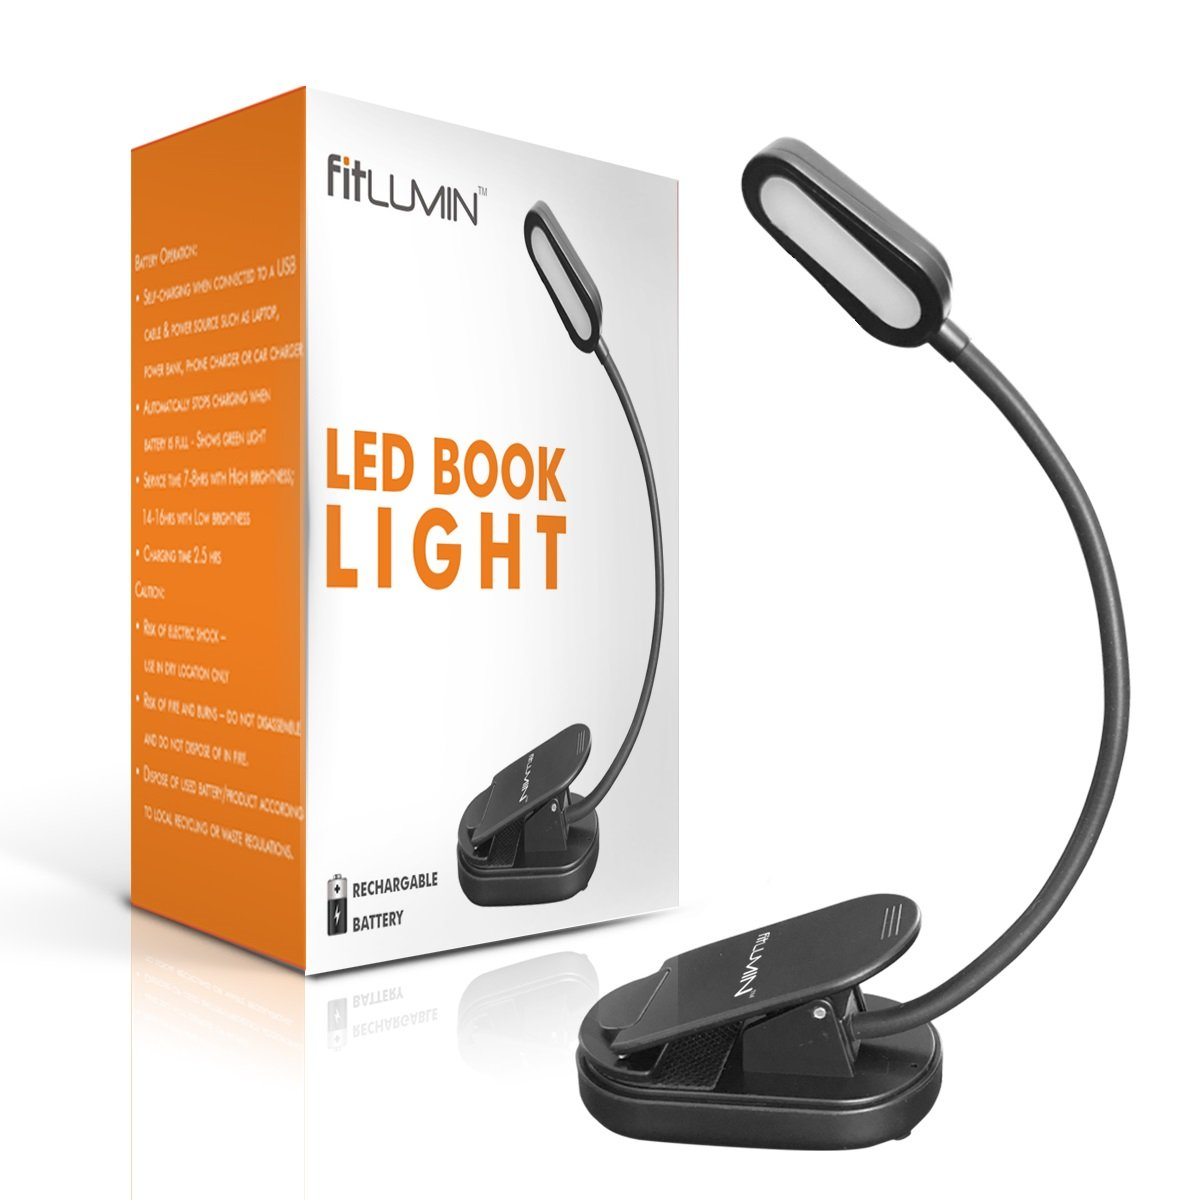 Fitlumin LED Book Light - Easy Clip on Reading Light for Bed – 3000K Warm Light Lamp for Eye Care, Slim & Rechargable – Best Book Light for Reading in Bed at Night, Perfect for Bookworms & Kids